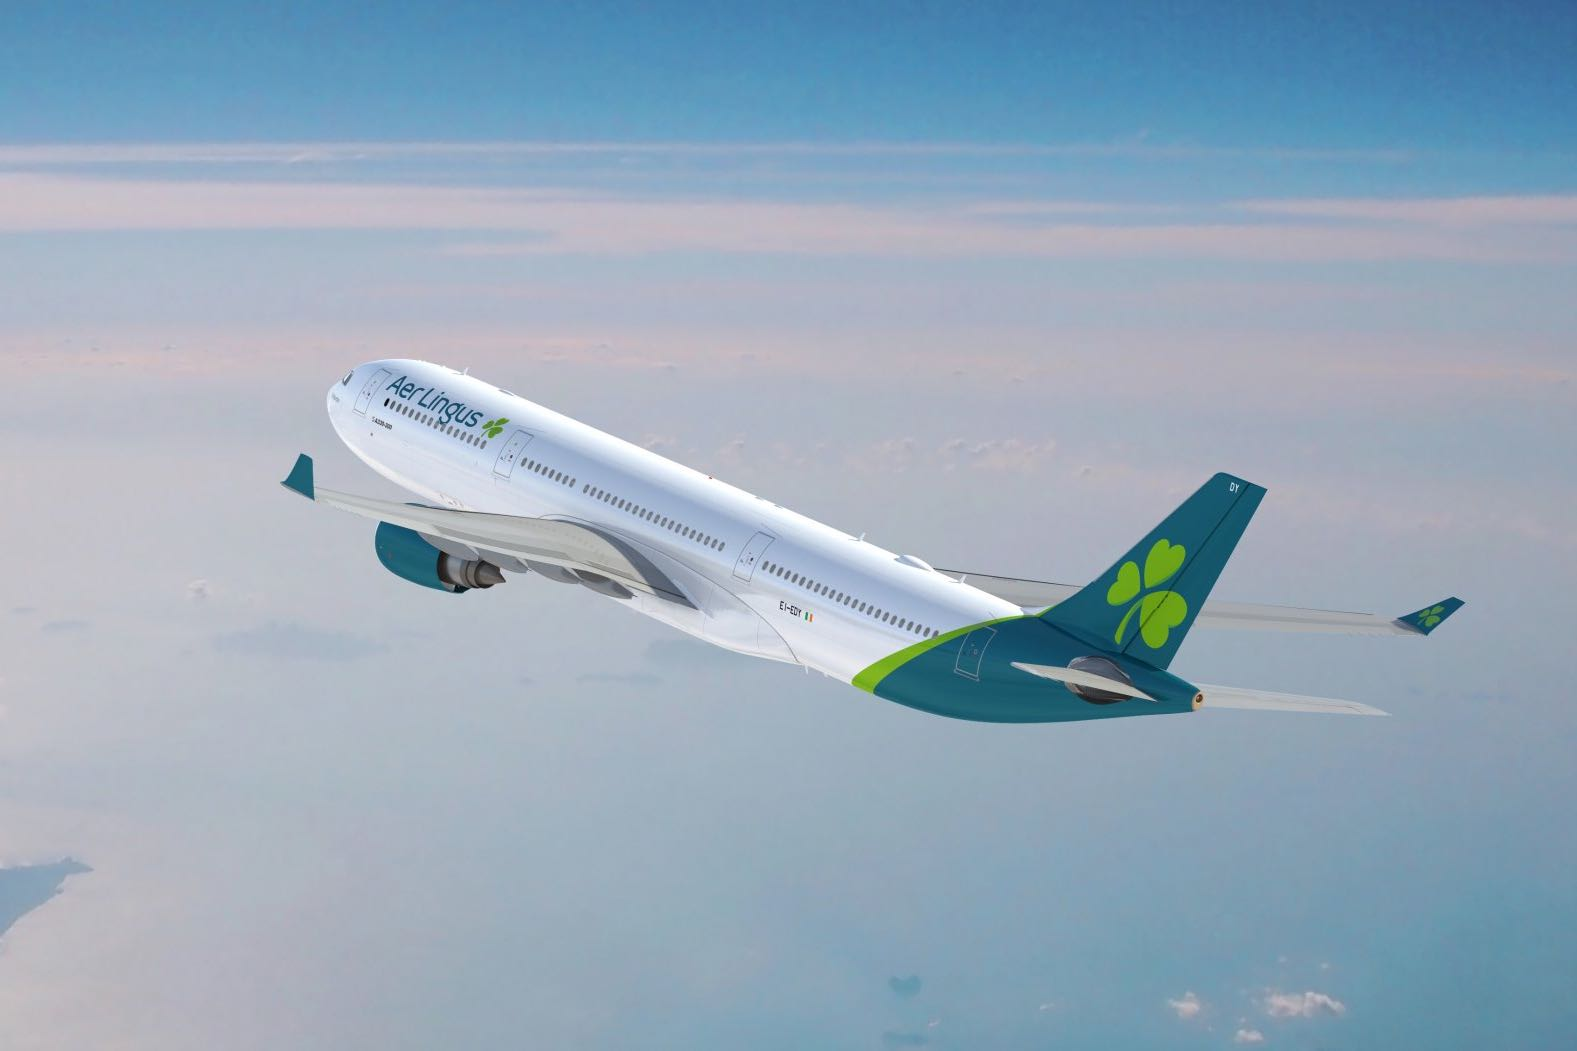 Aer Lingus offers more flexible bookings for summer 2021